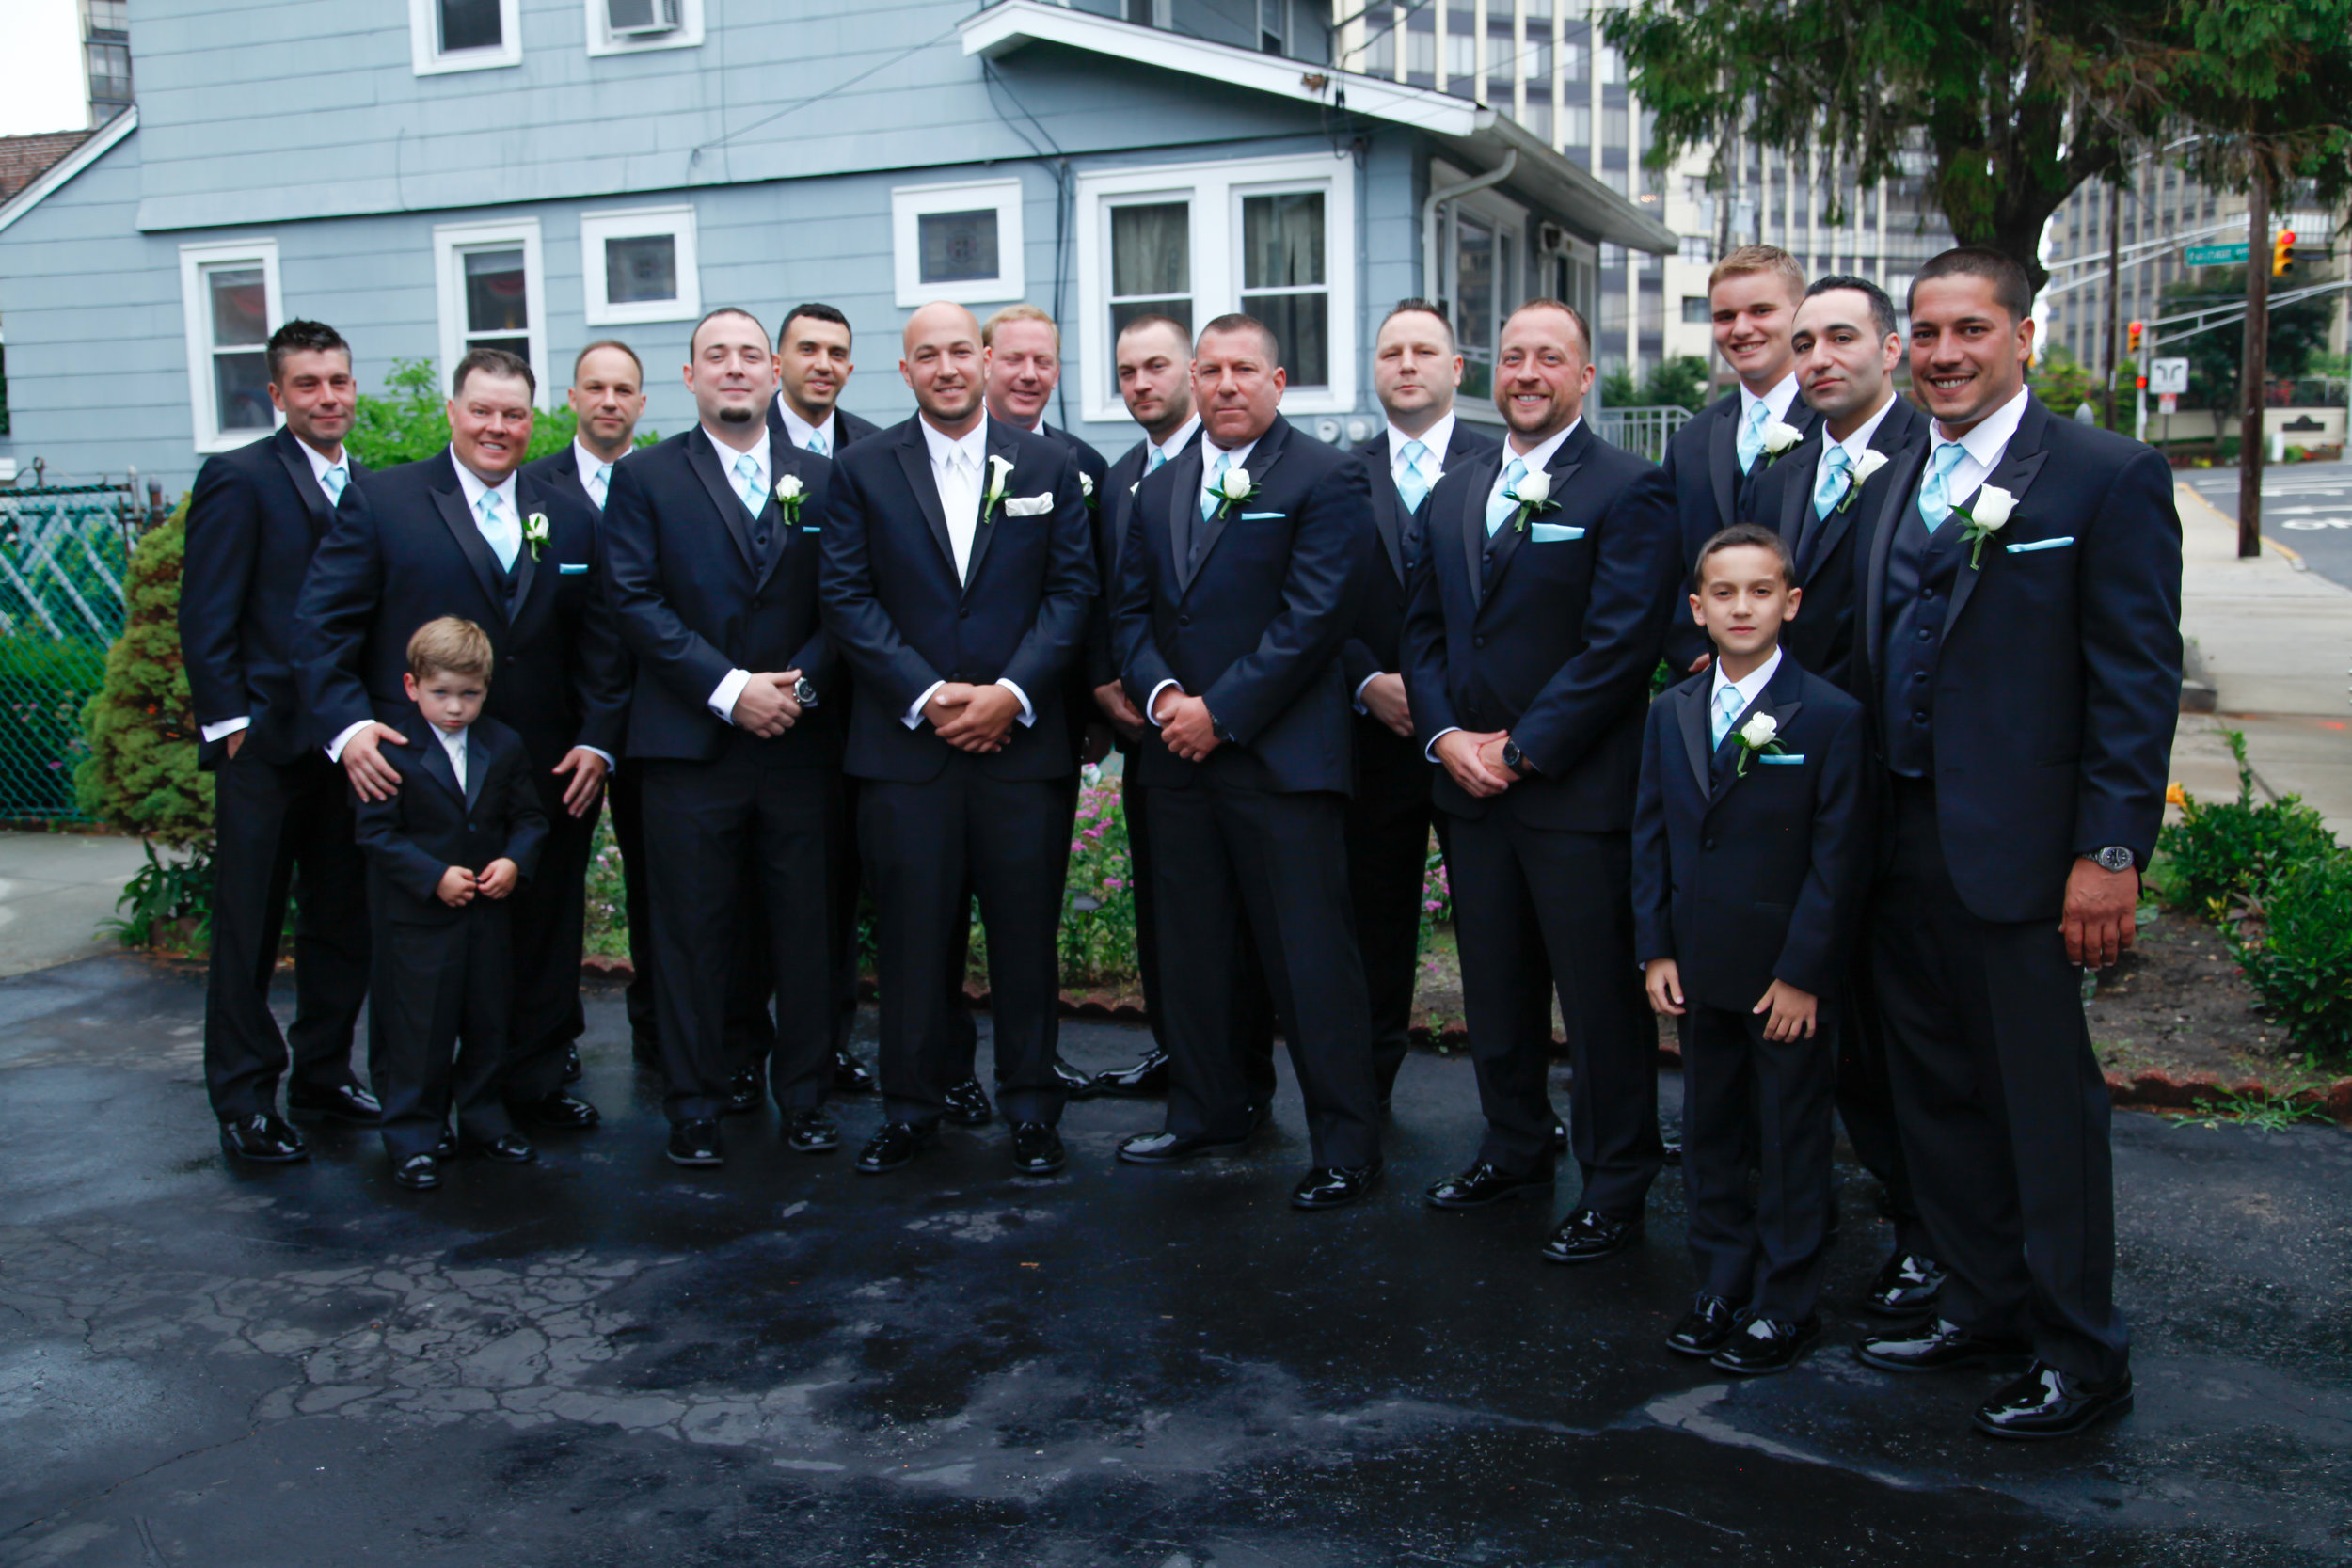 Wedding party wearing Black slim fit tuxedos